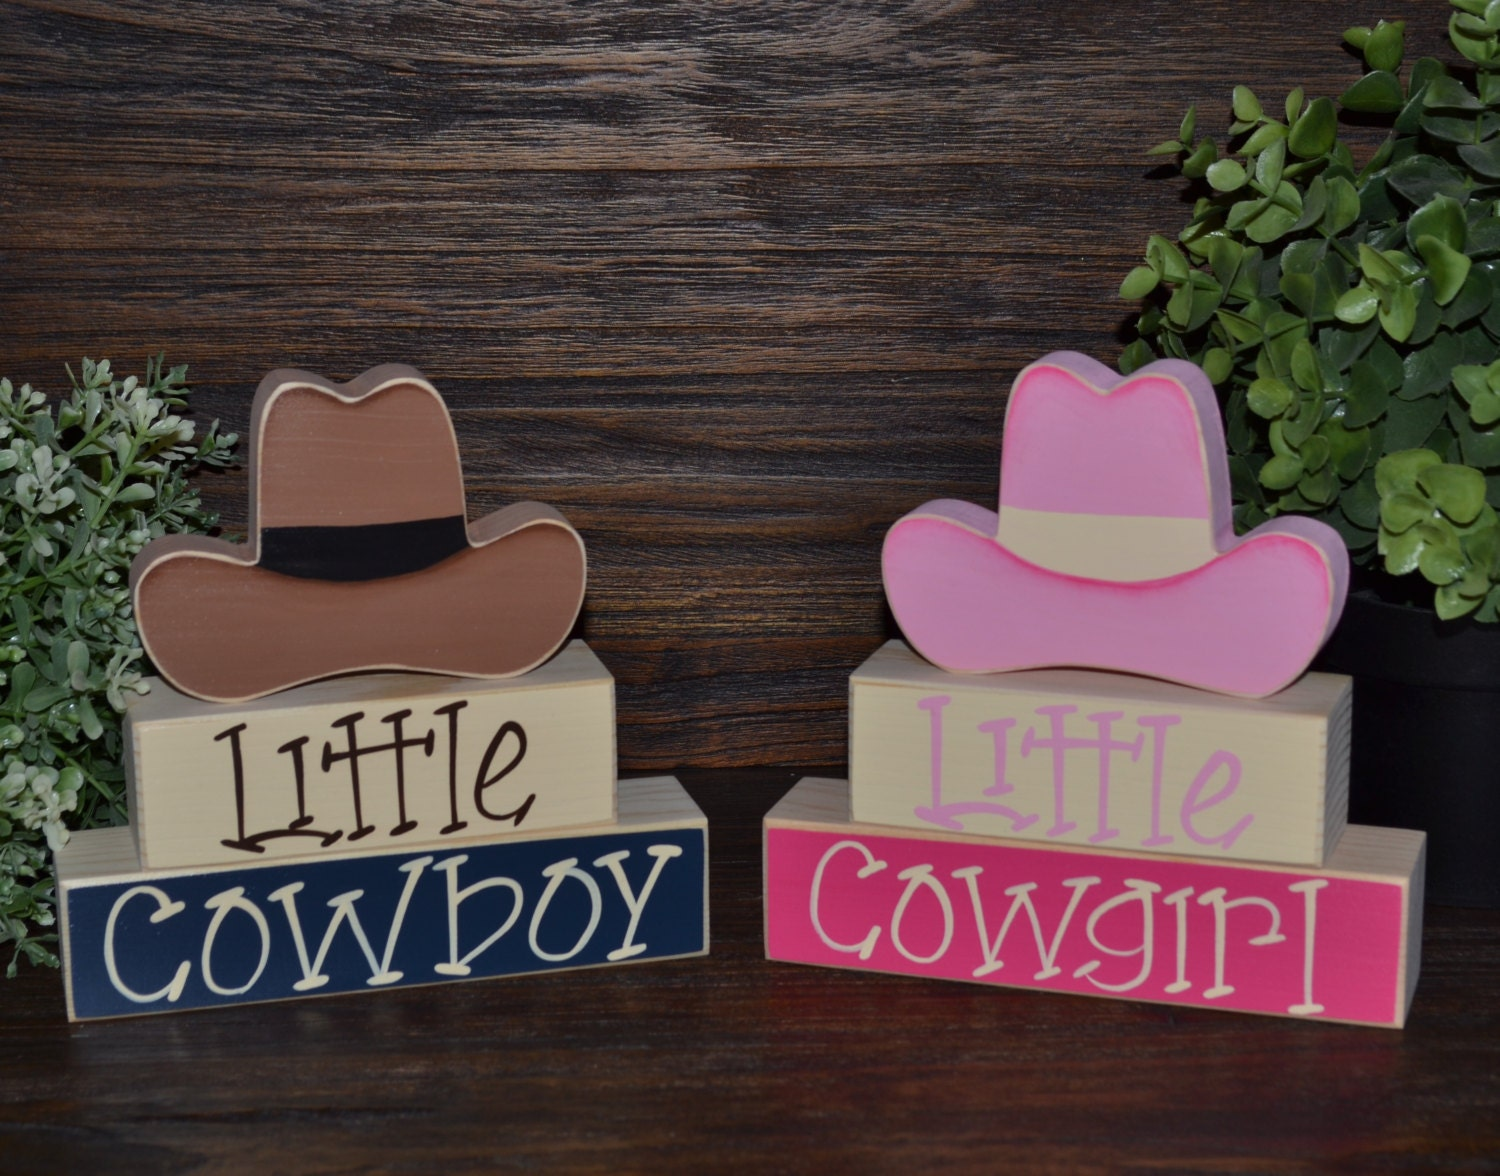 Little Cowboy Western Home Decor Cowgirl Birthday ...